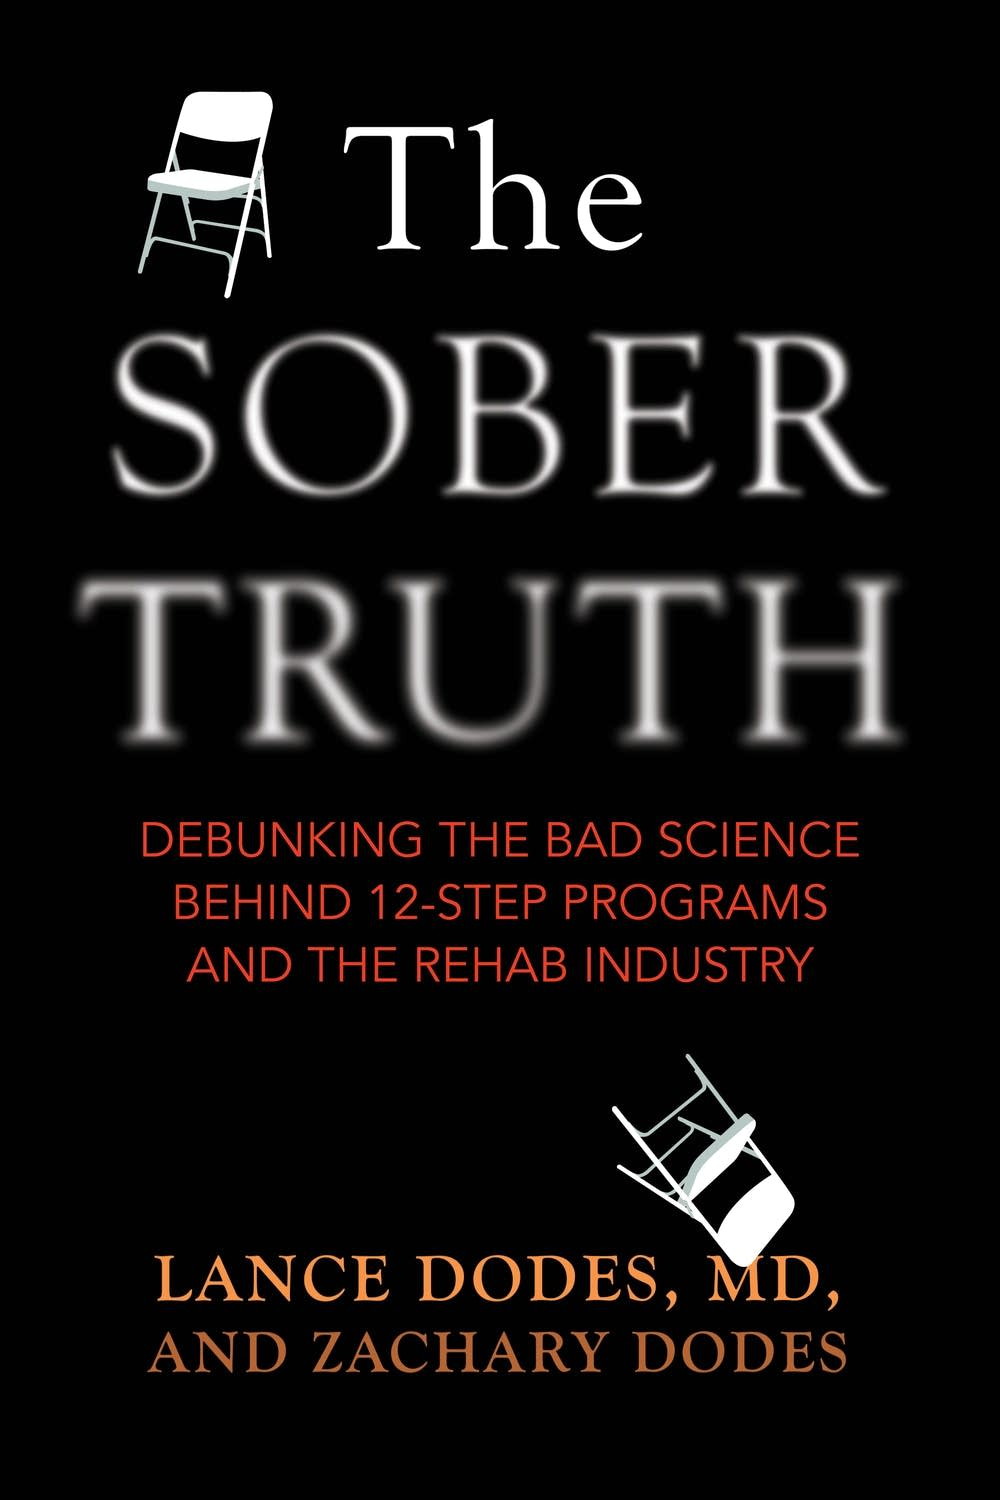 'The Sober Truth' by Lance Dodes and Zachary Dodes